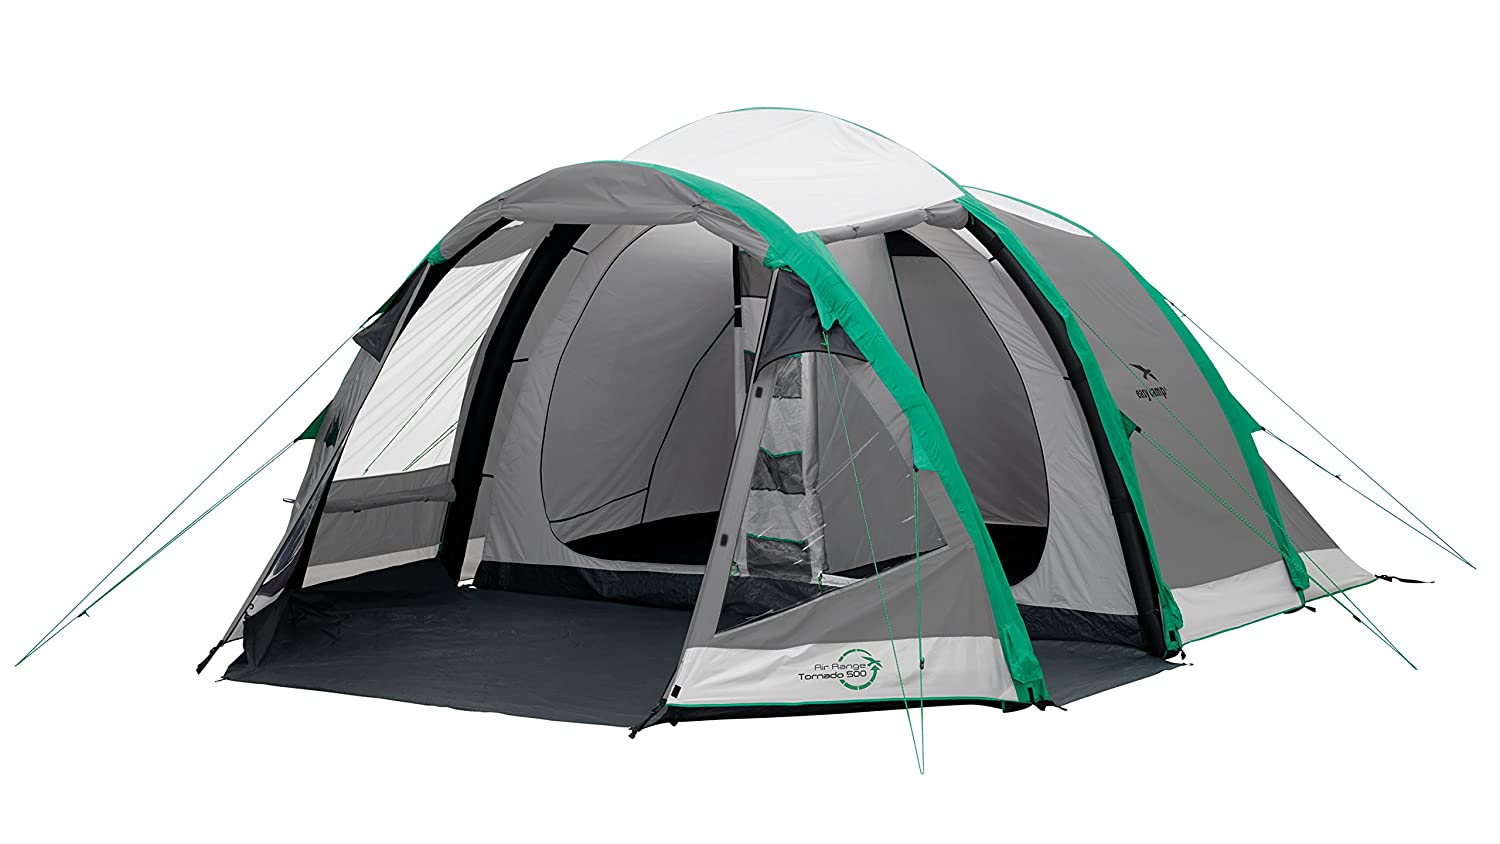 easy camp Tornado 500 grey